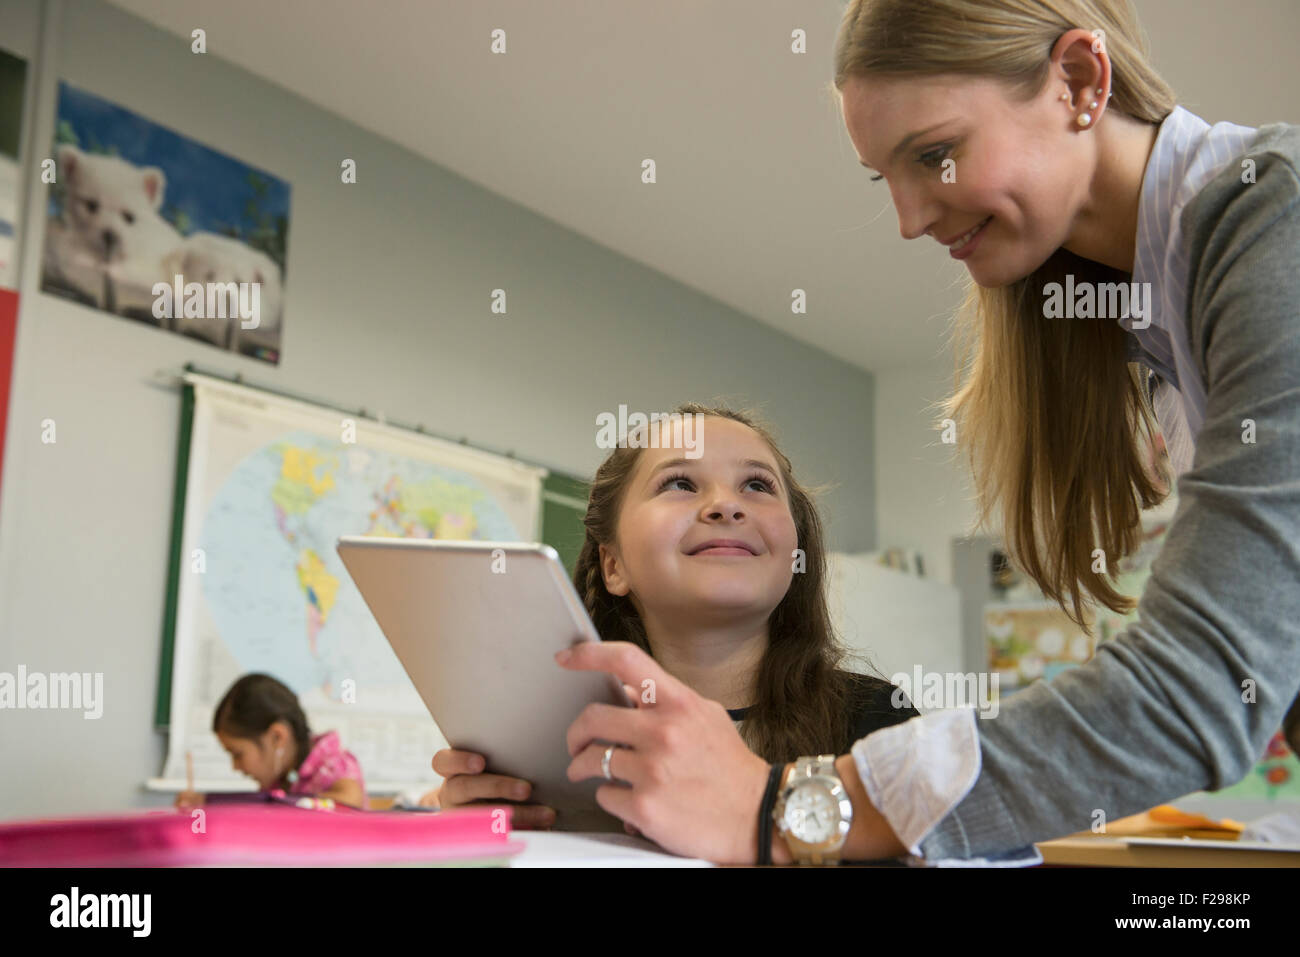 Female teacher showing a girl something on digital tablet pc in classroom, Munich, Bavaria, Germany - Stock Image